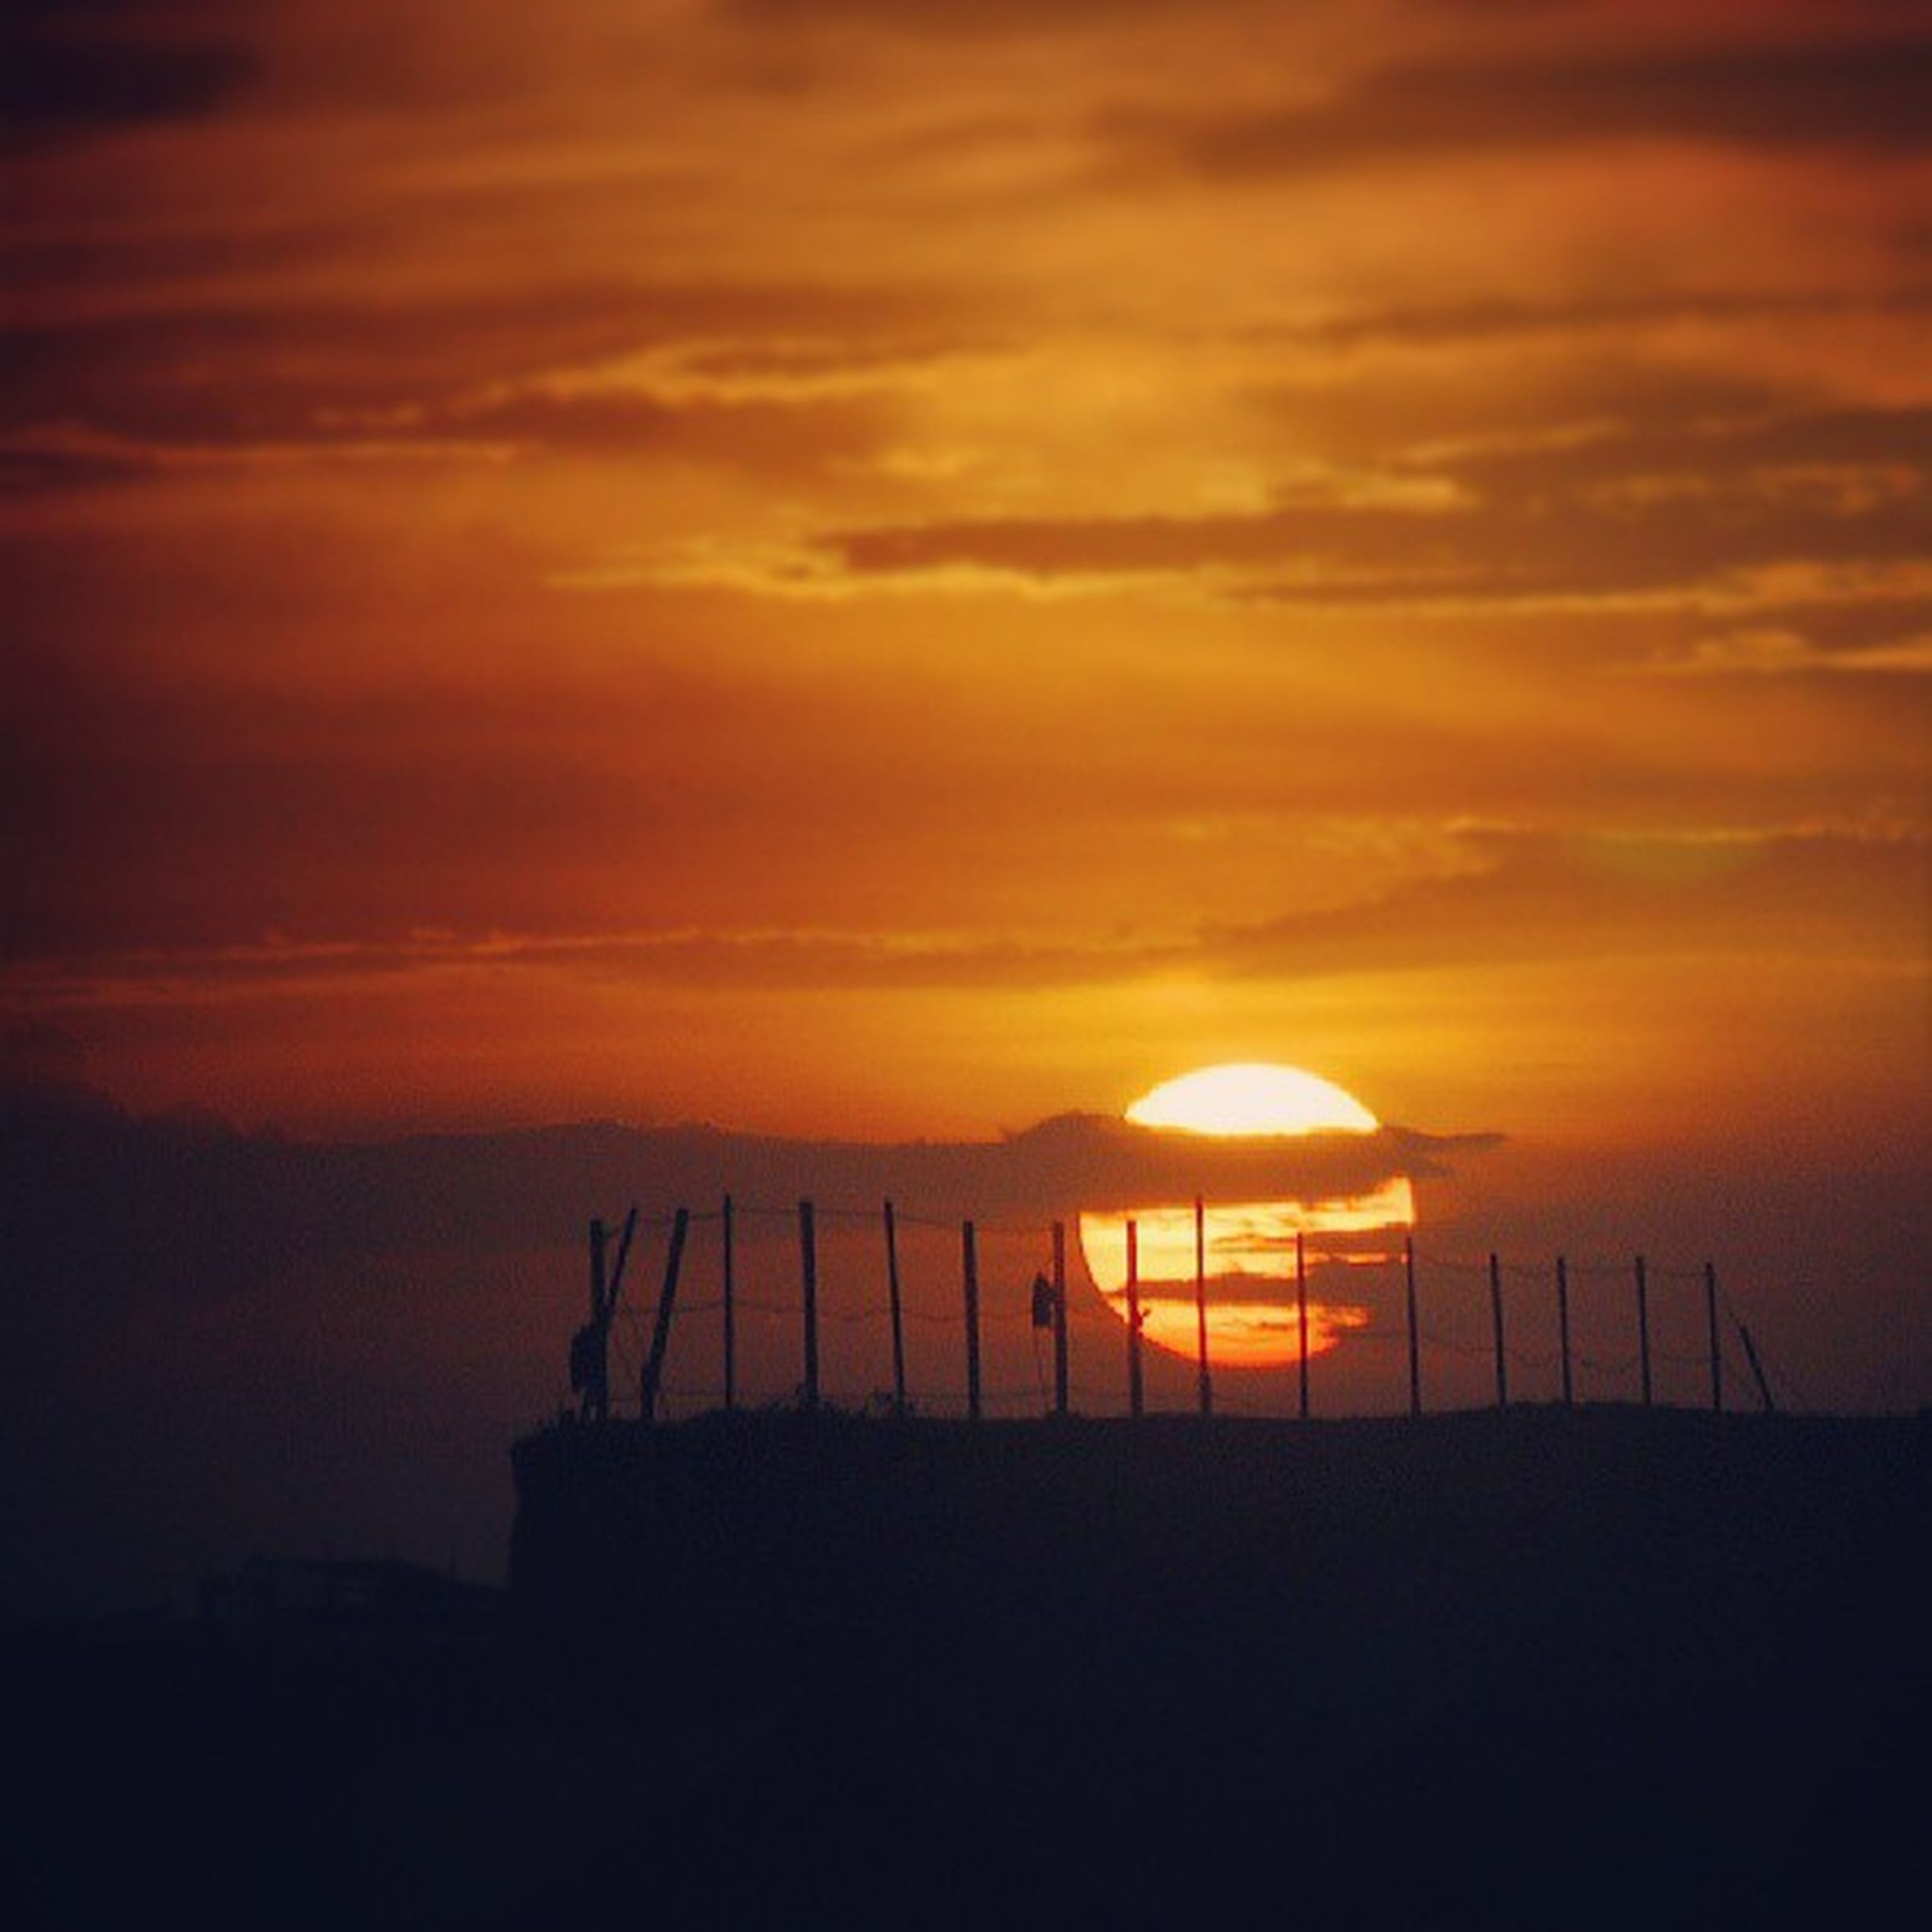 sunset, orange color, sky, silhouette, scenics, tranquility, tranquil scene, beauty in nature, cloud - sky, idyllic, nature, sea, sun, built structure, dramatic sky, railing, outdoors, architecture, no people, fence